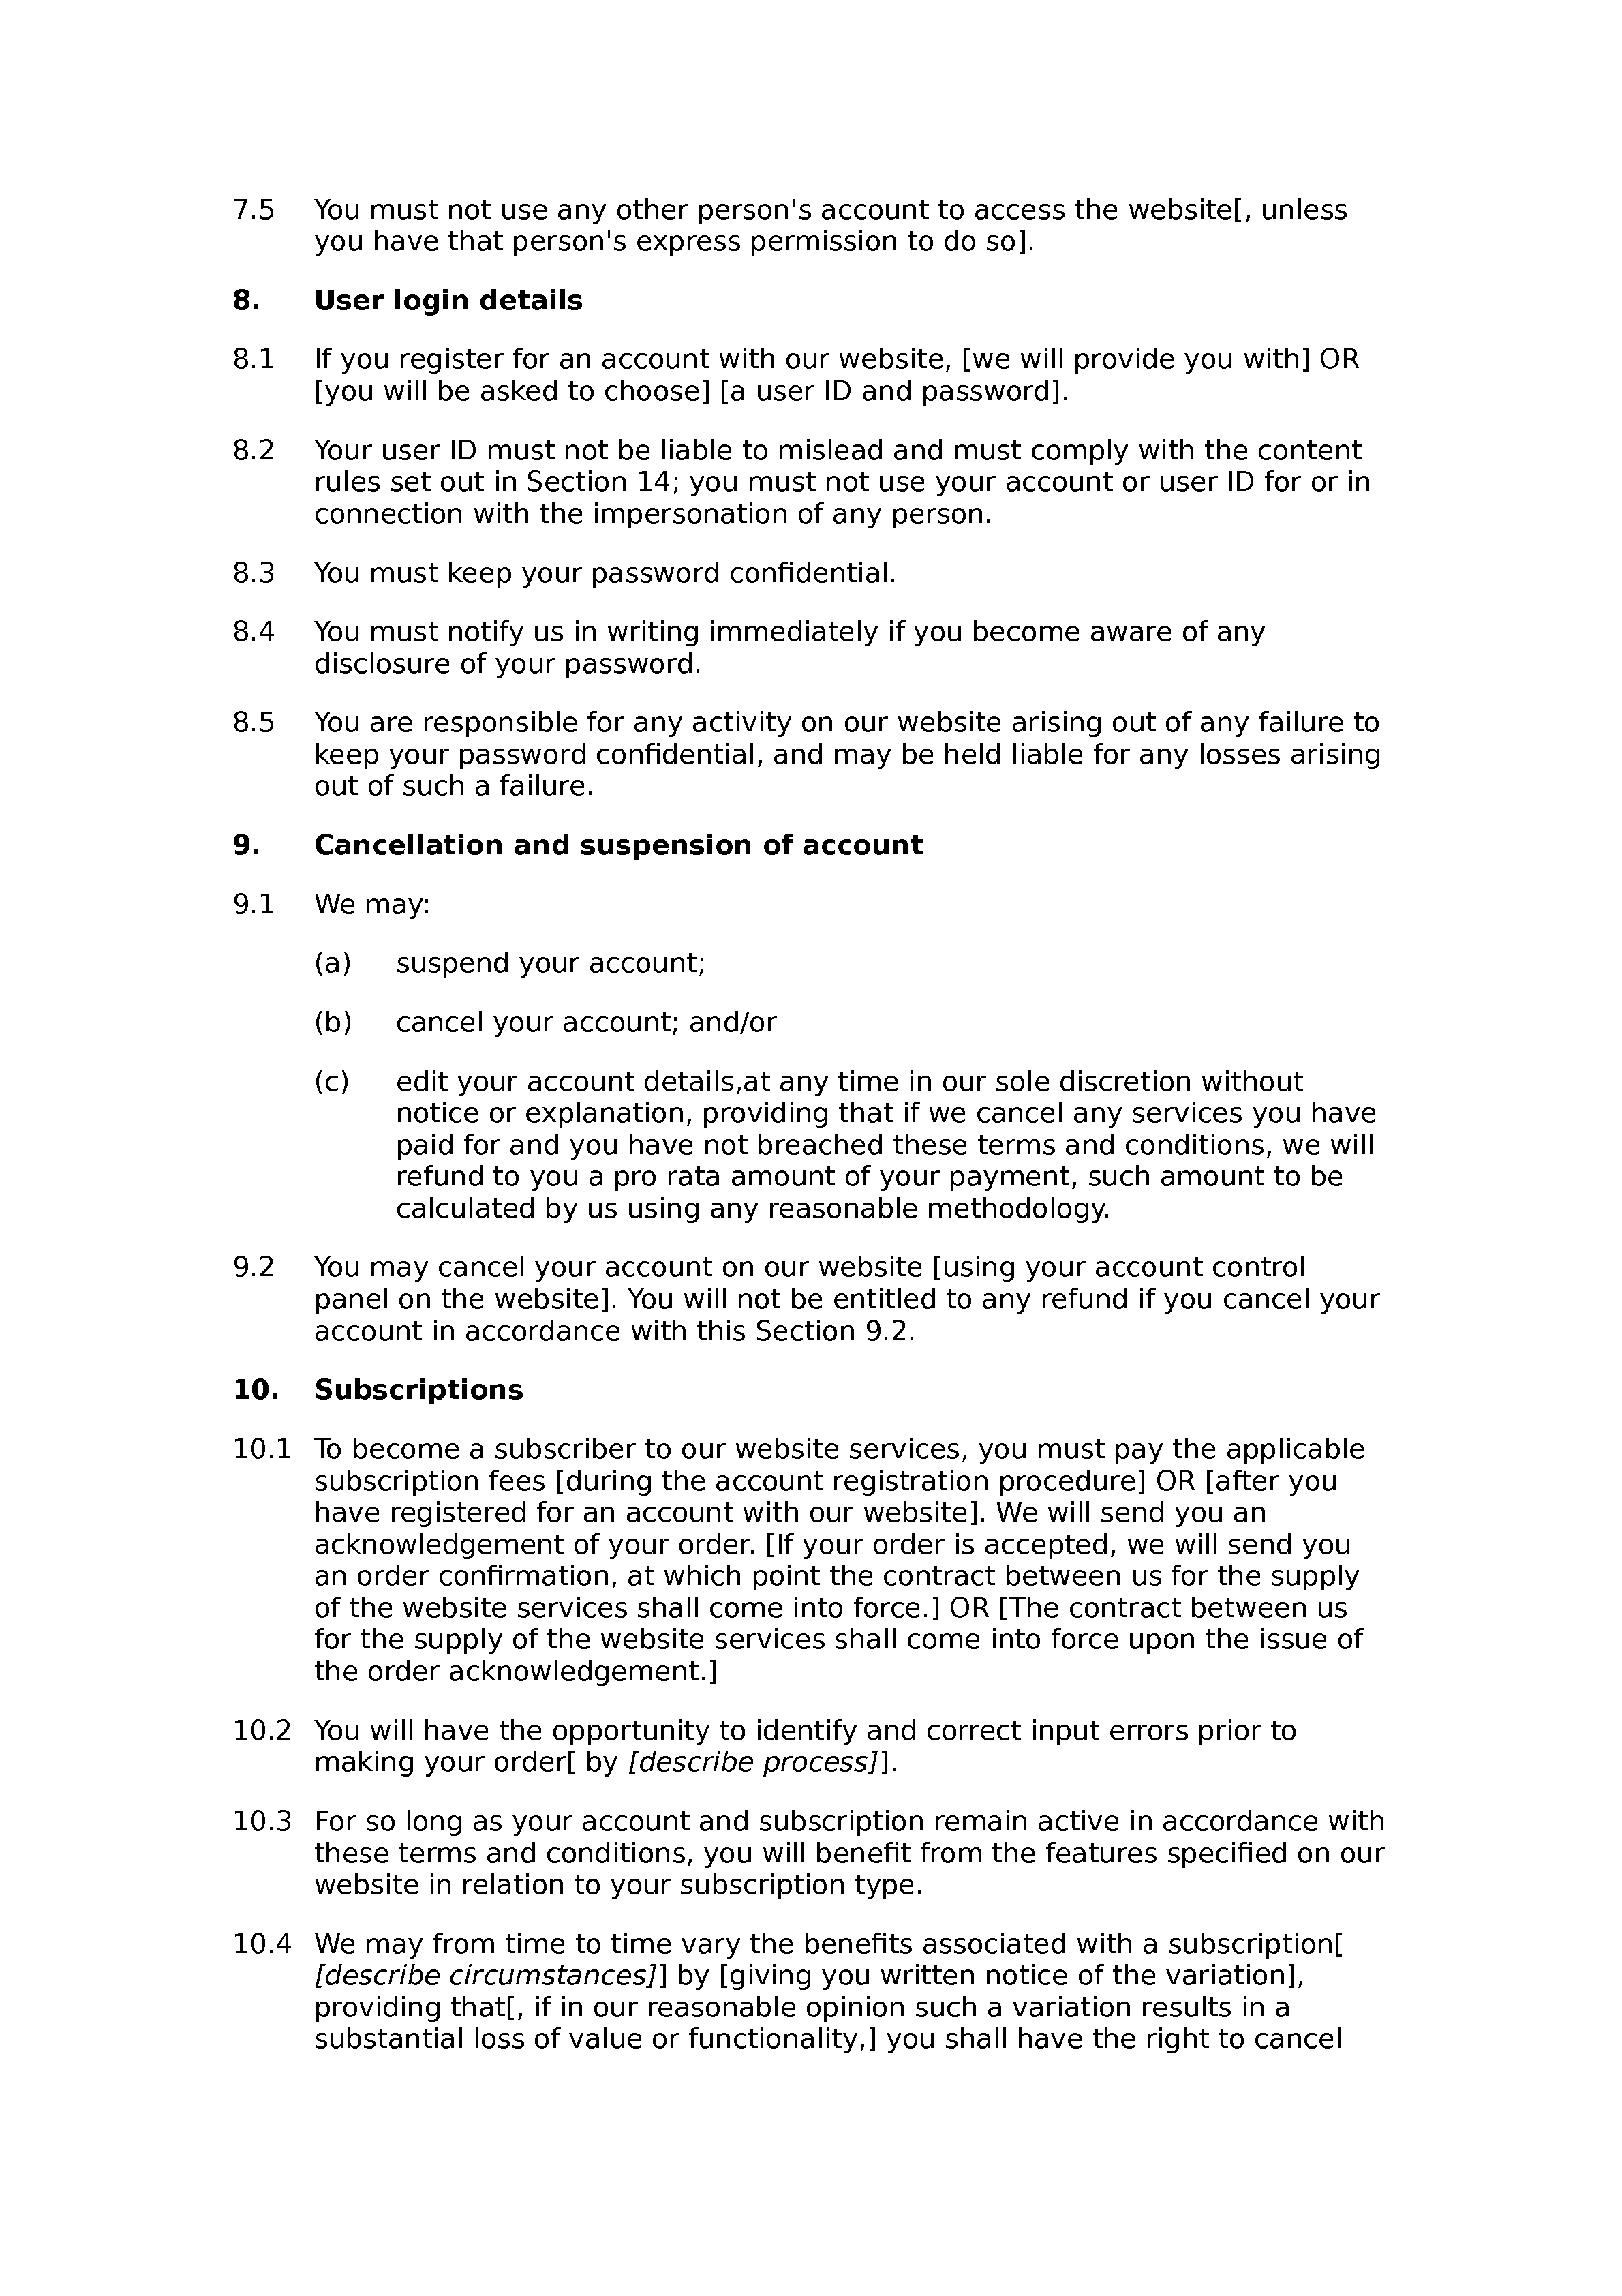 Financial subscription website terms and conditions document preview